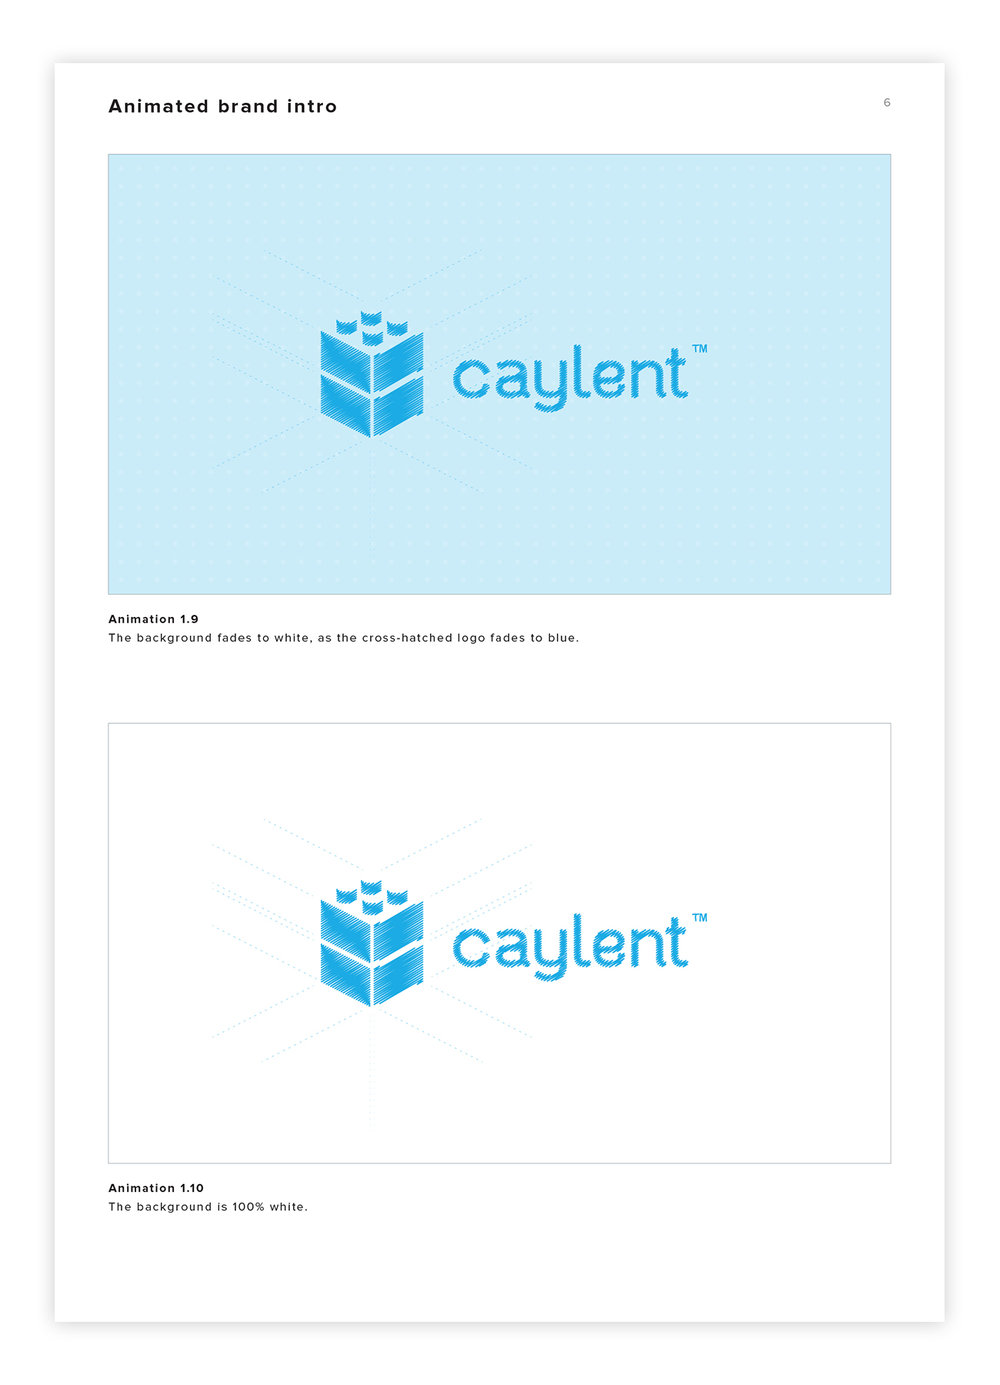 Caylent_Animated_Brand_Intro_Presentation.5.jpg